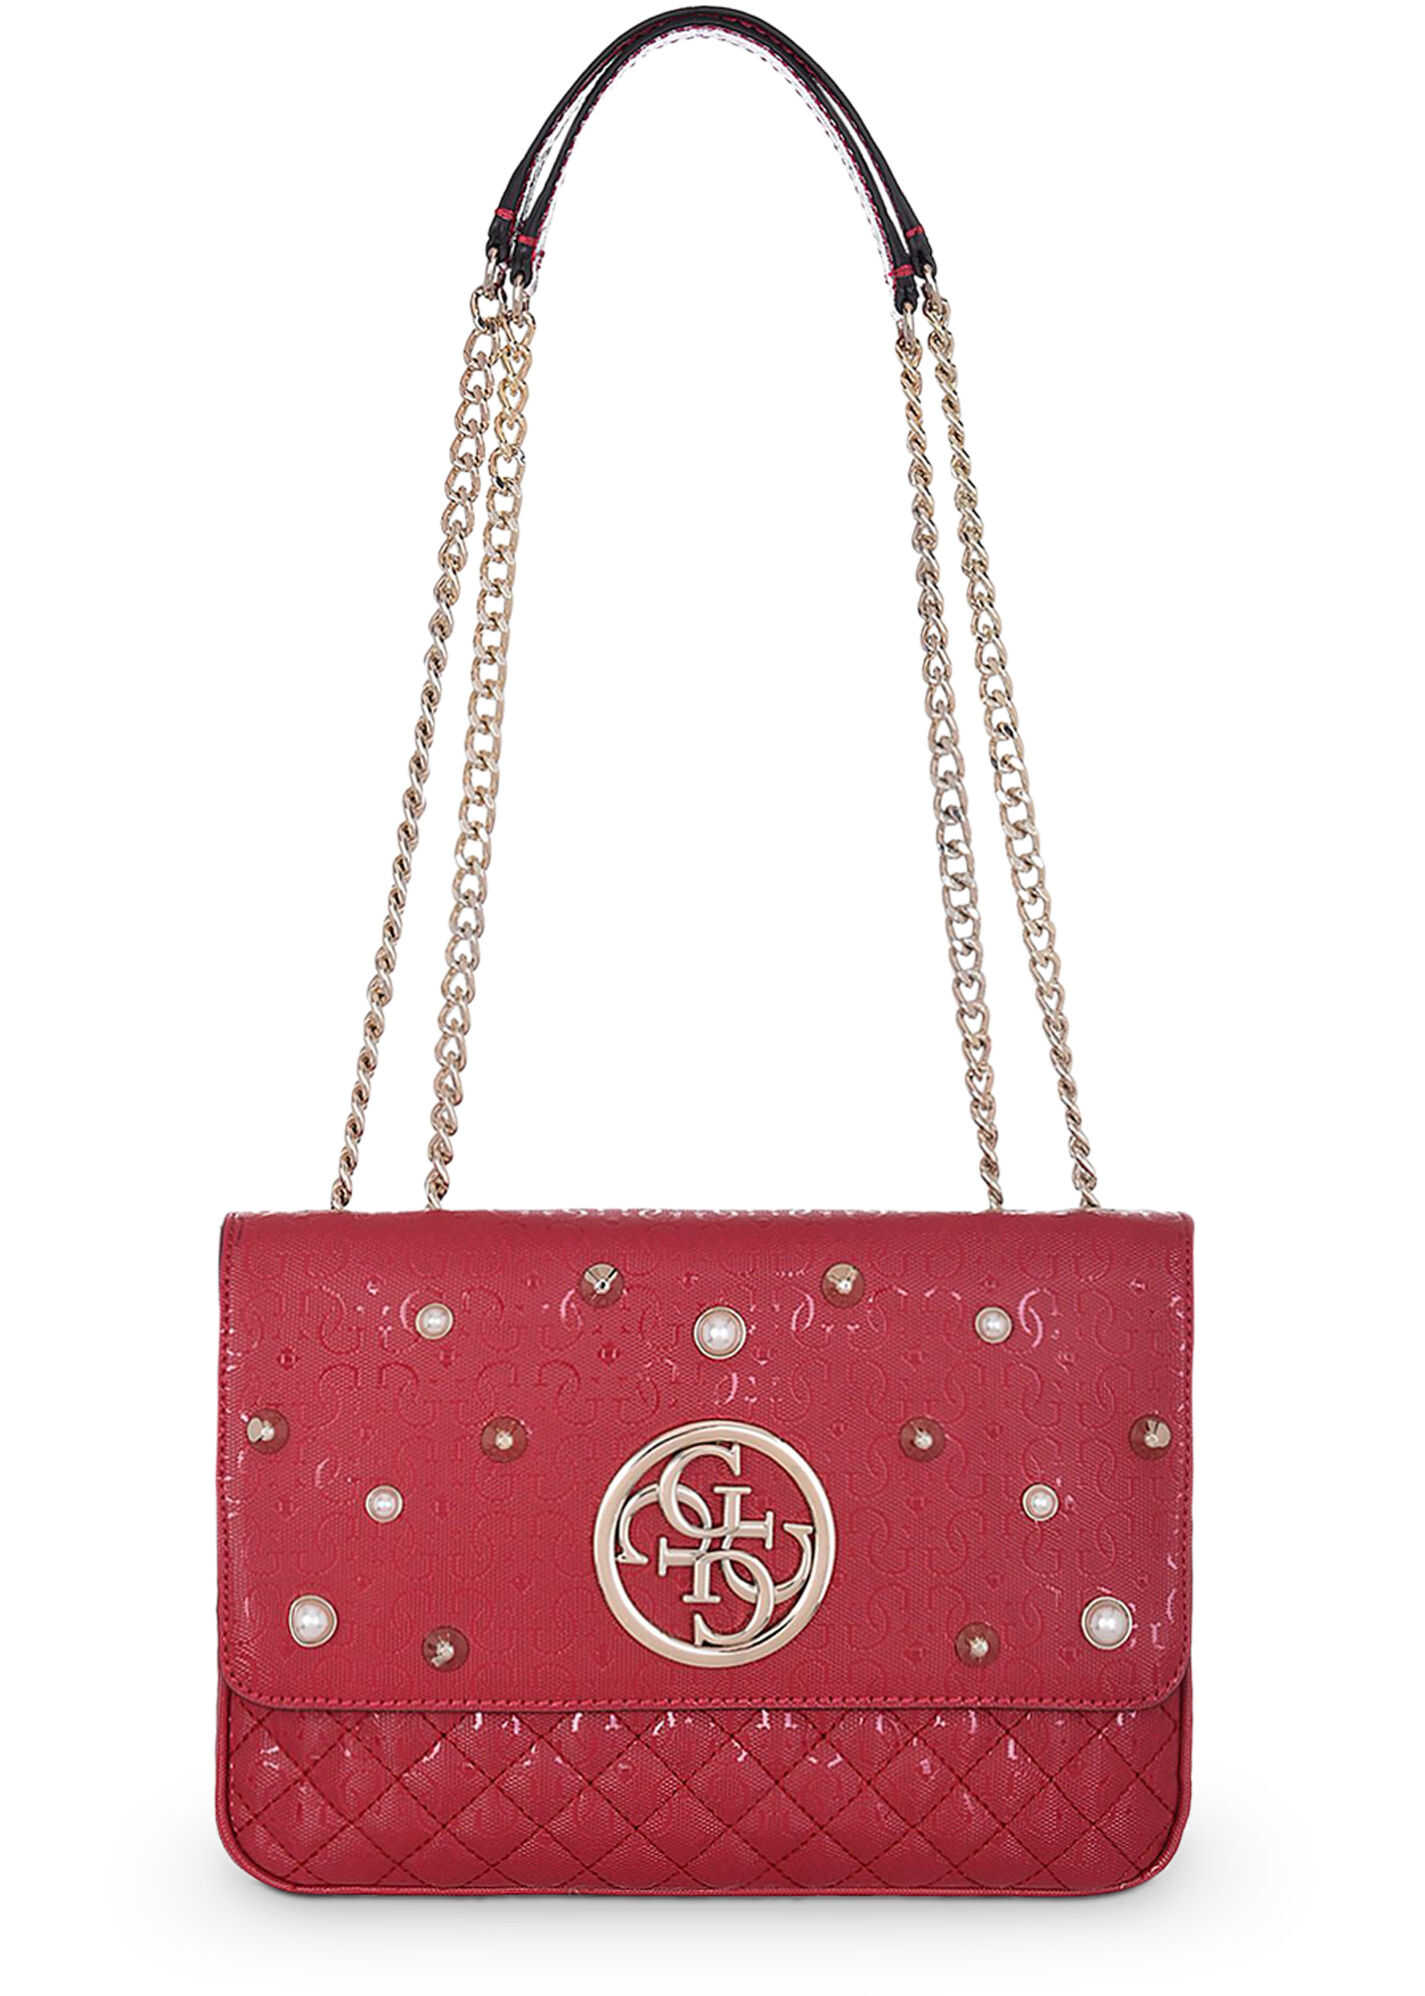 GUESS Hwsg69_89210 Red